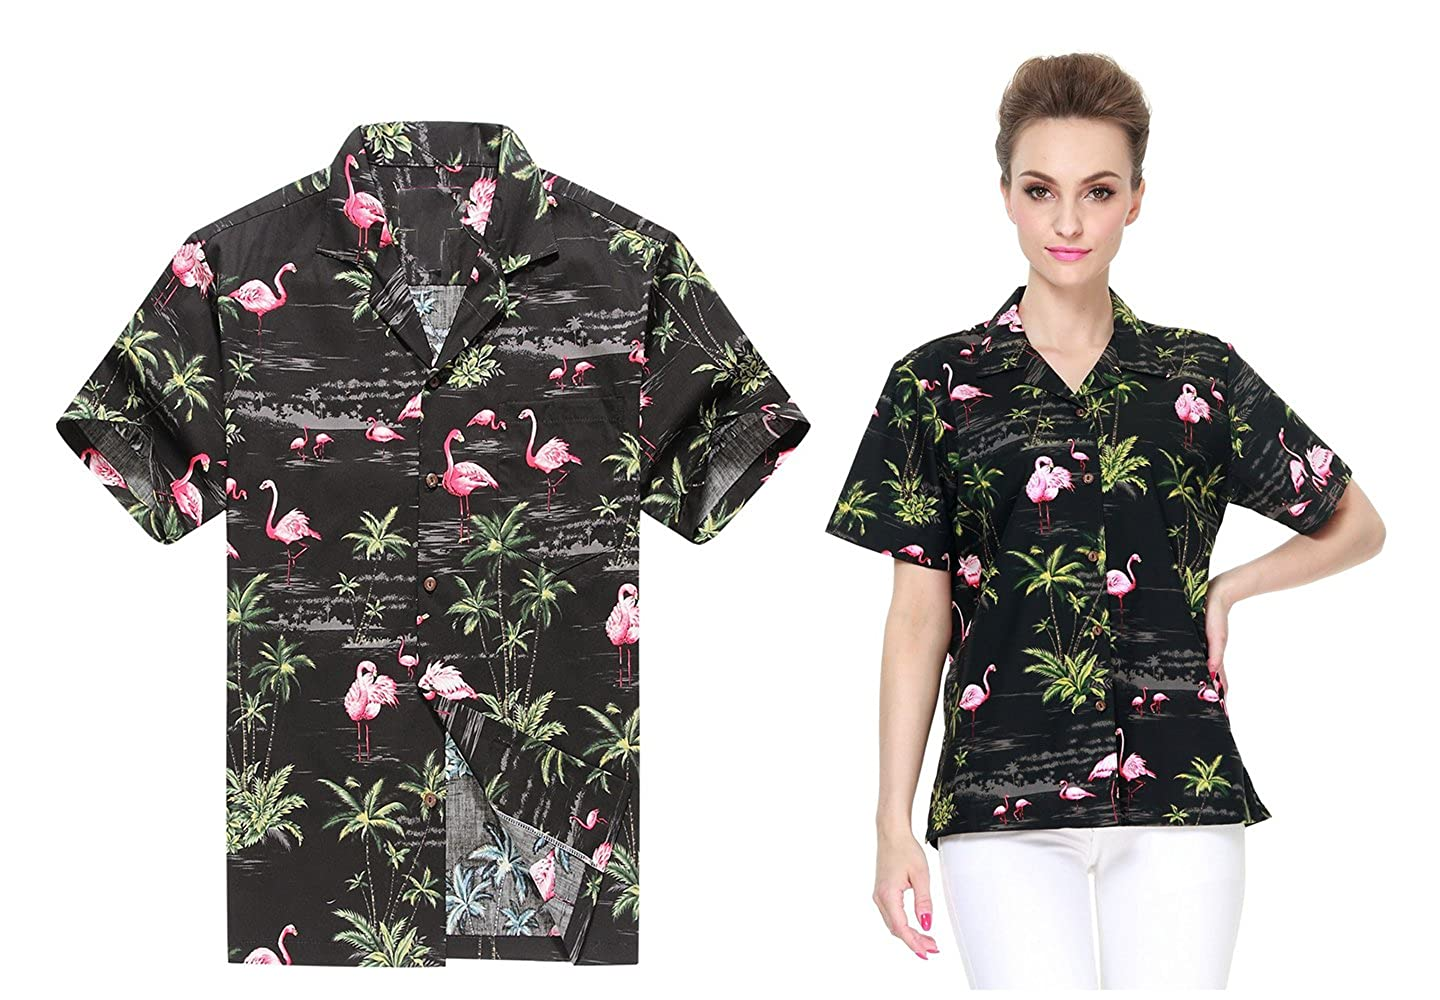 a89eb802 Miss Hawaii Already? Keep the Hawaii Hangover going! Price includes one men  shirt and one women Dress Made in Hawaii, Exact Matching Outfit.